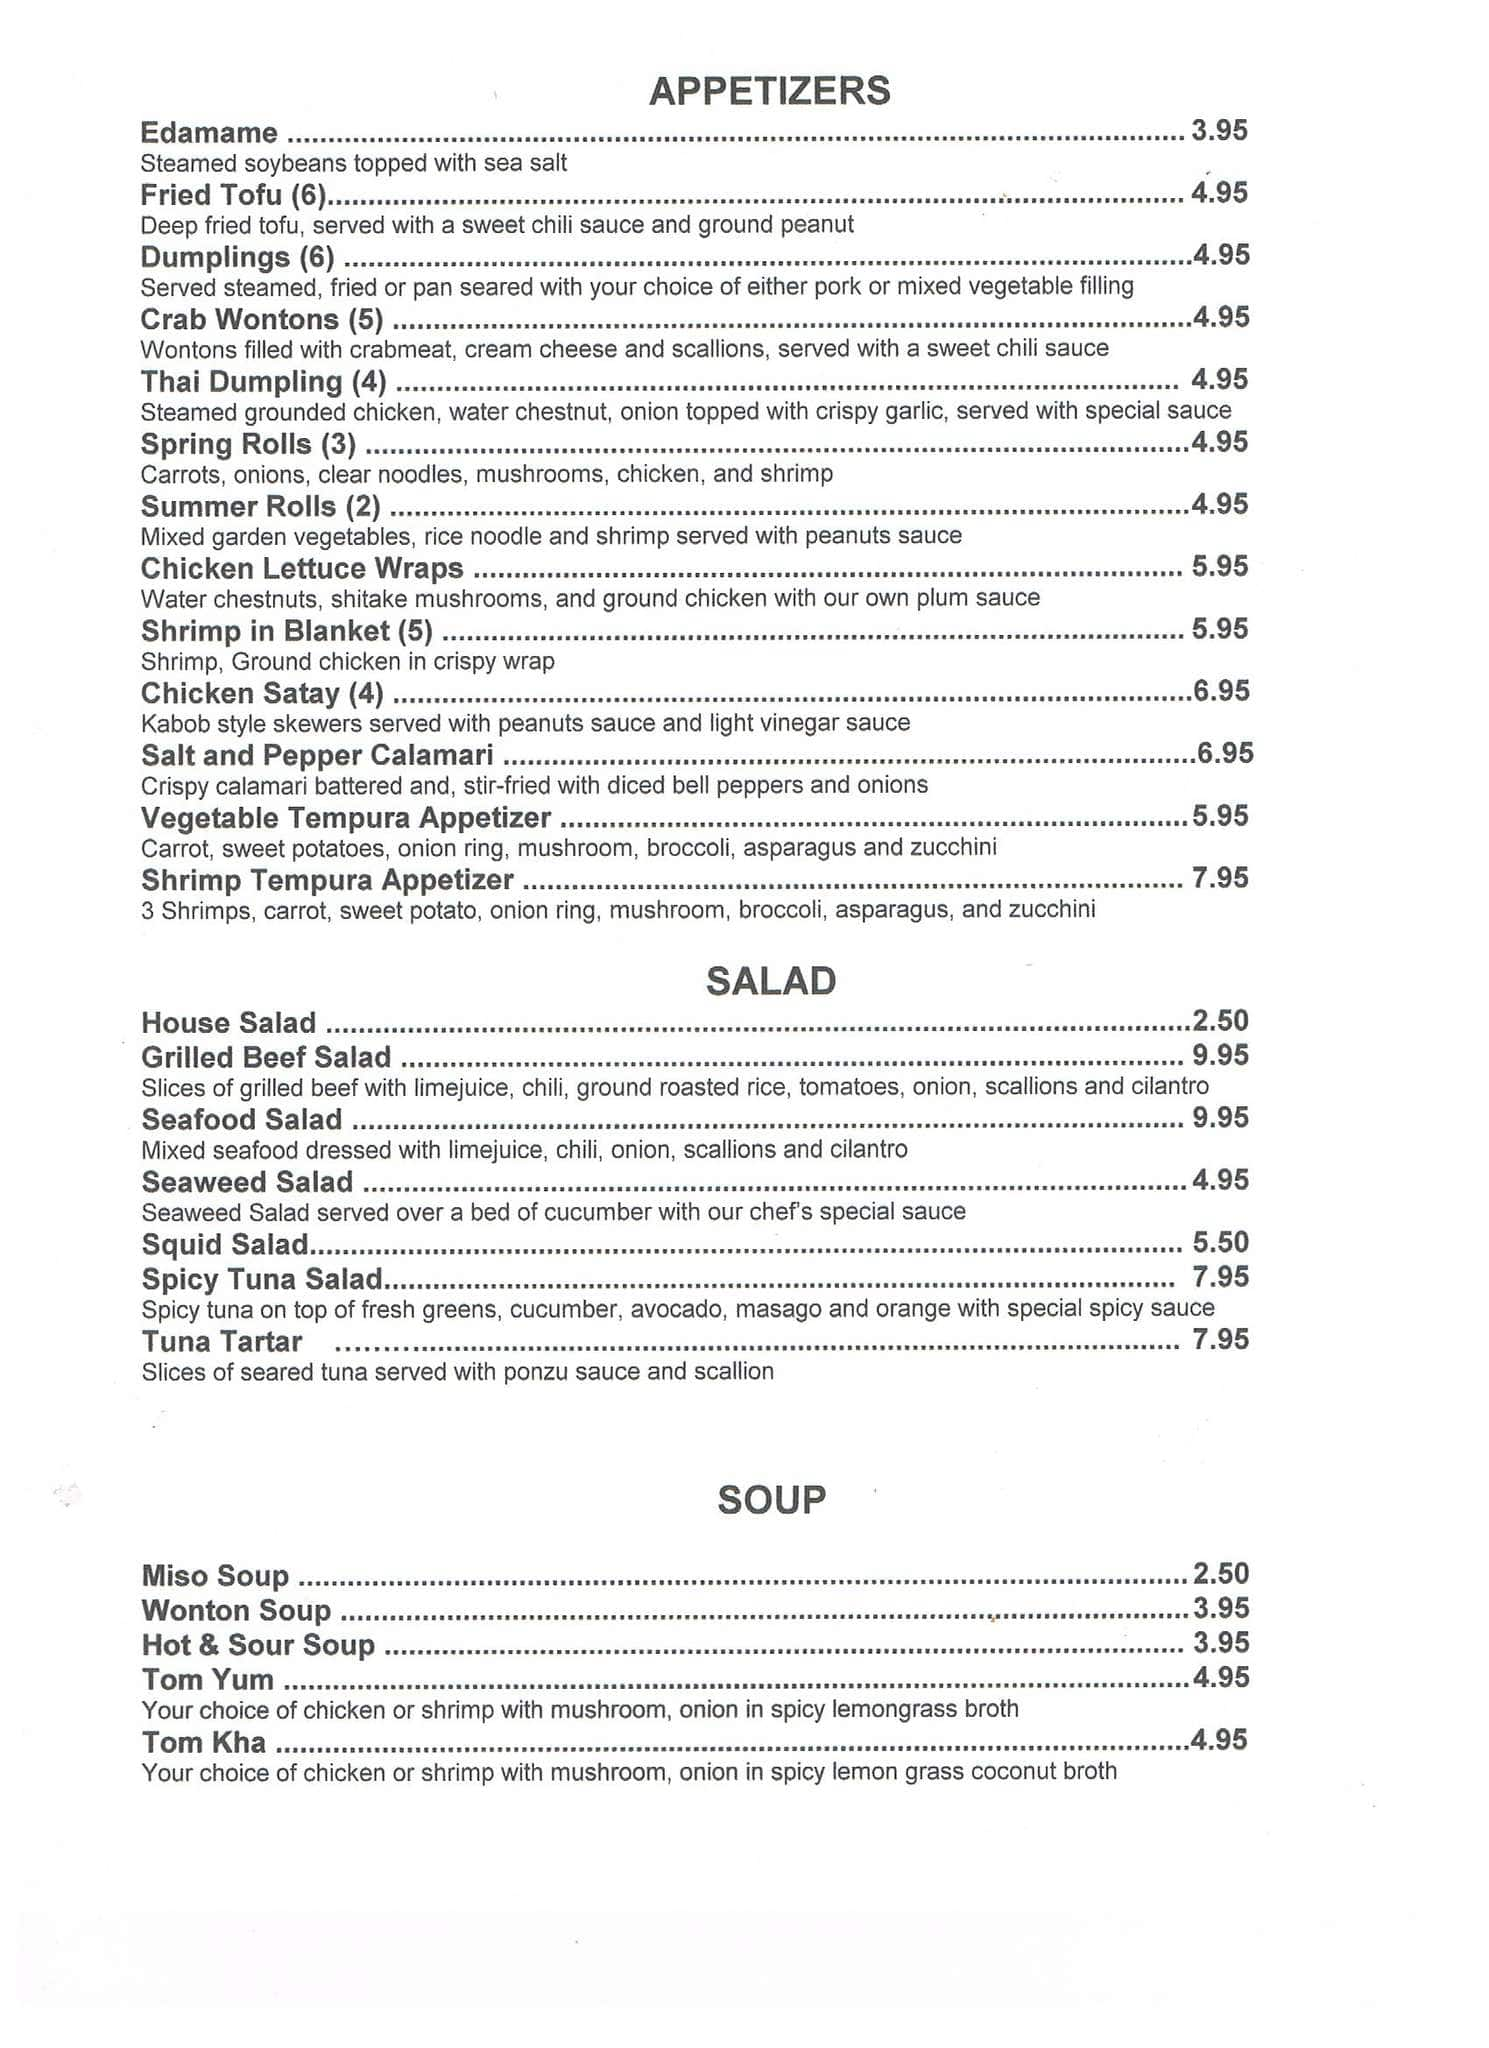 Soi Asian Bistro Menu Aafabcfeebcbeb